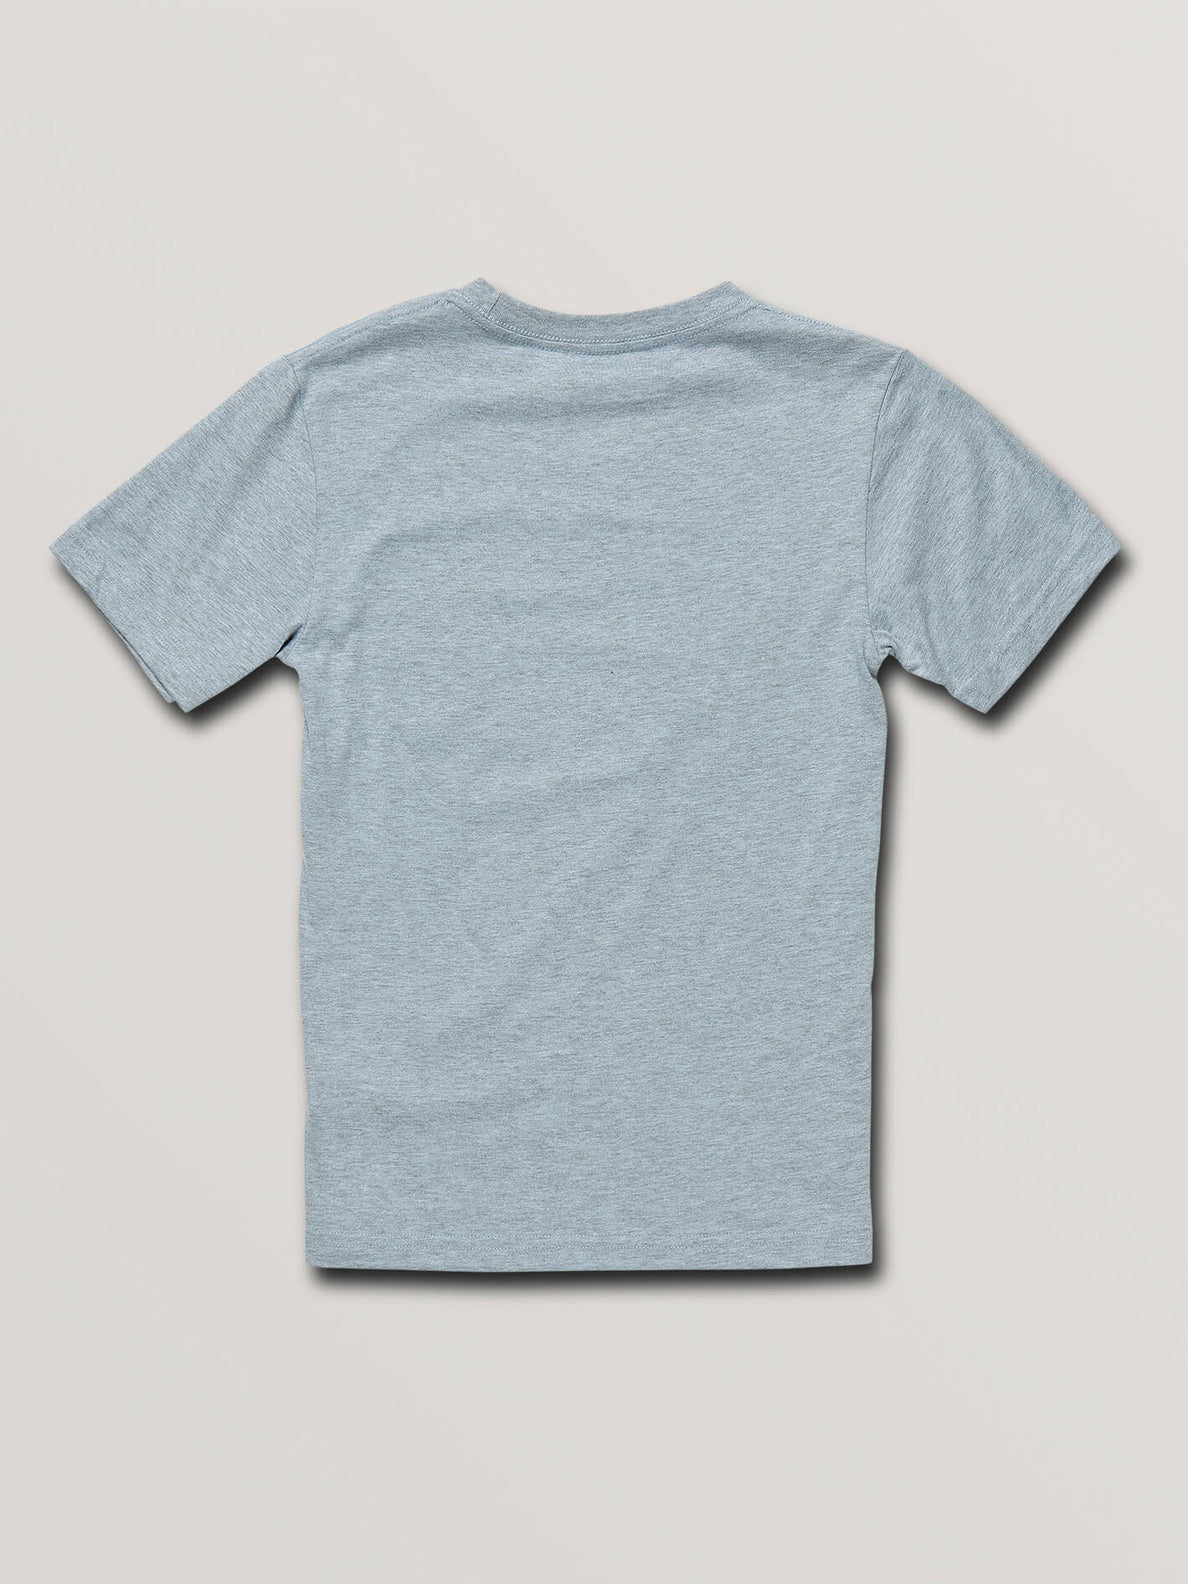 Big Boys Chop Around Short Sleeve Tee In Arctic Blue, Back View